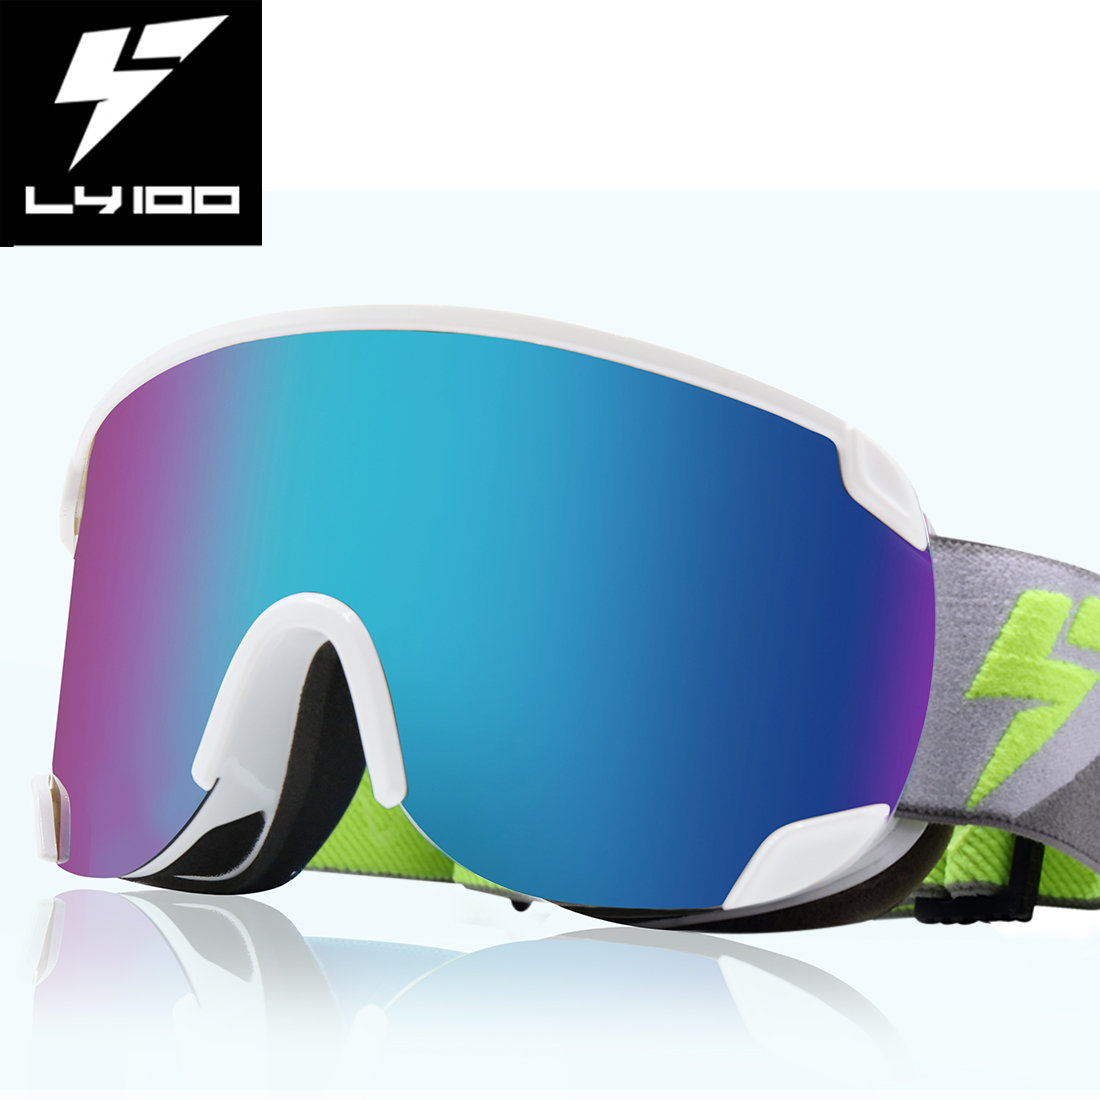 LY-100 Authorized Ski Snowboard Goggles OTG Glasses Anti-fog UV Protect White by Unique-Bargains